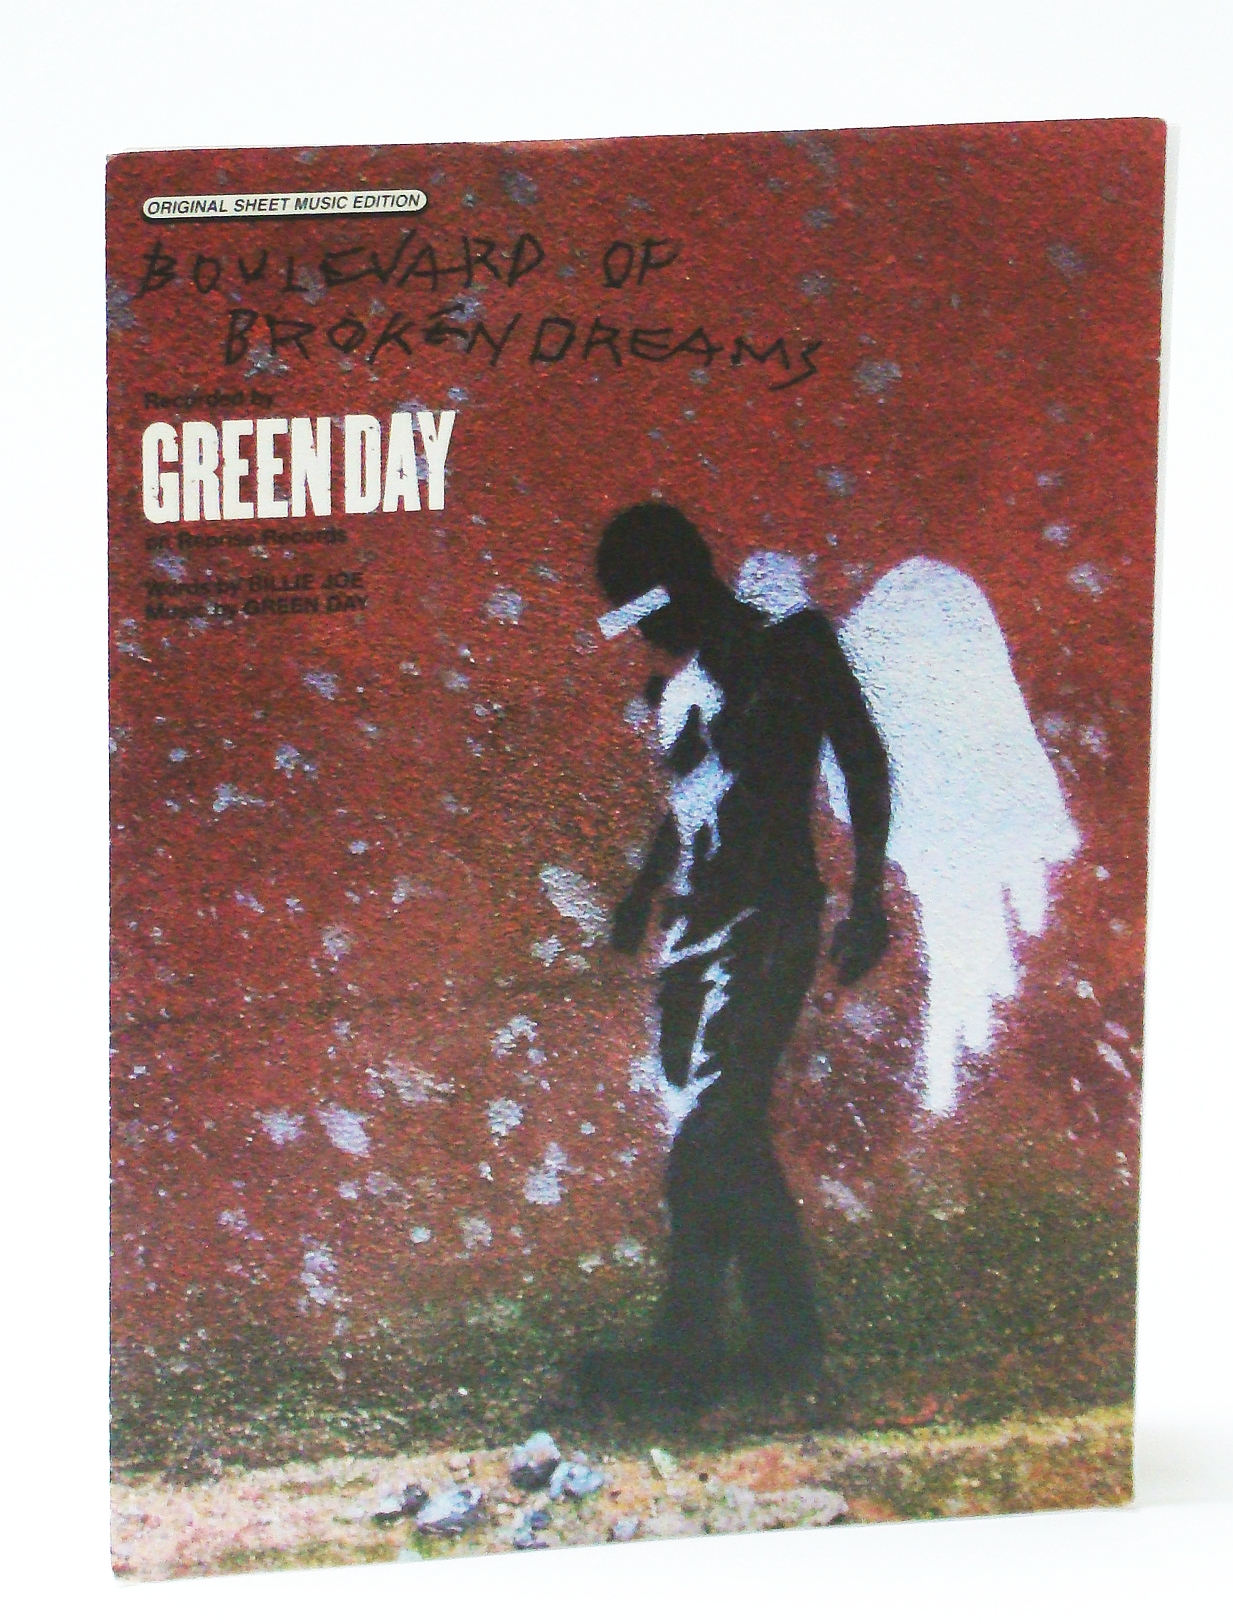 Image for Boulevard of Broken Dreams - Recorded By Green Day: Sheet Music for Piano and Voice with Guitar Chords